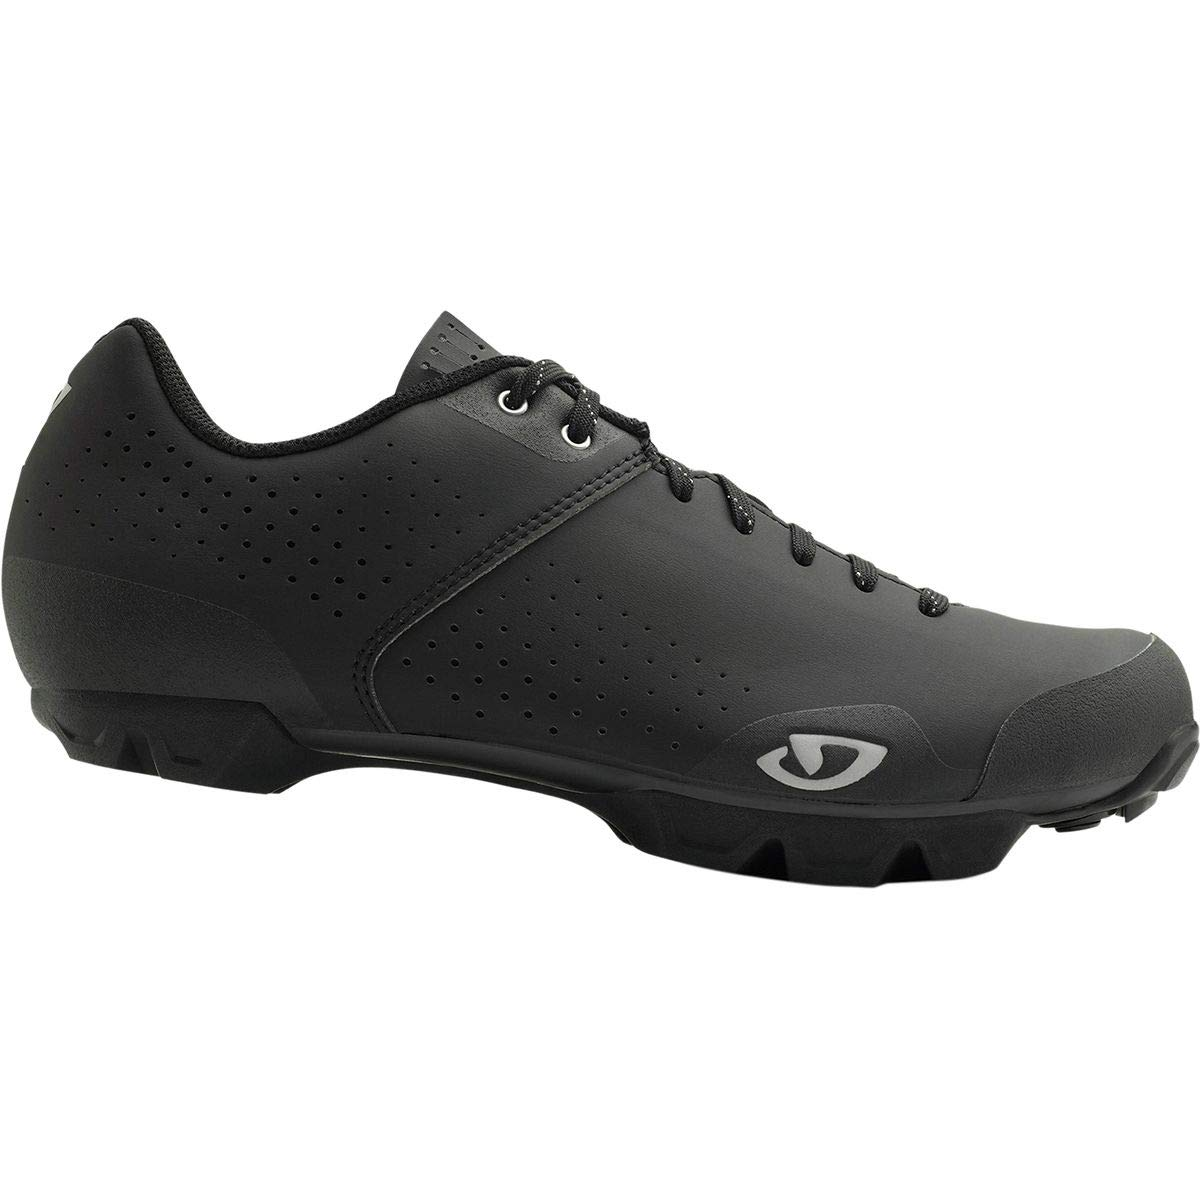 Black Giro Privateer Lace Cycling shoes - Men's